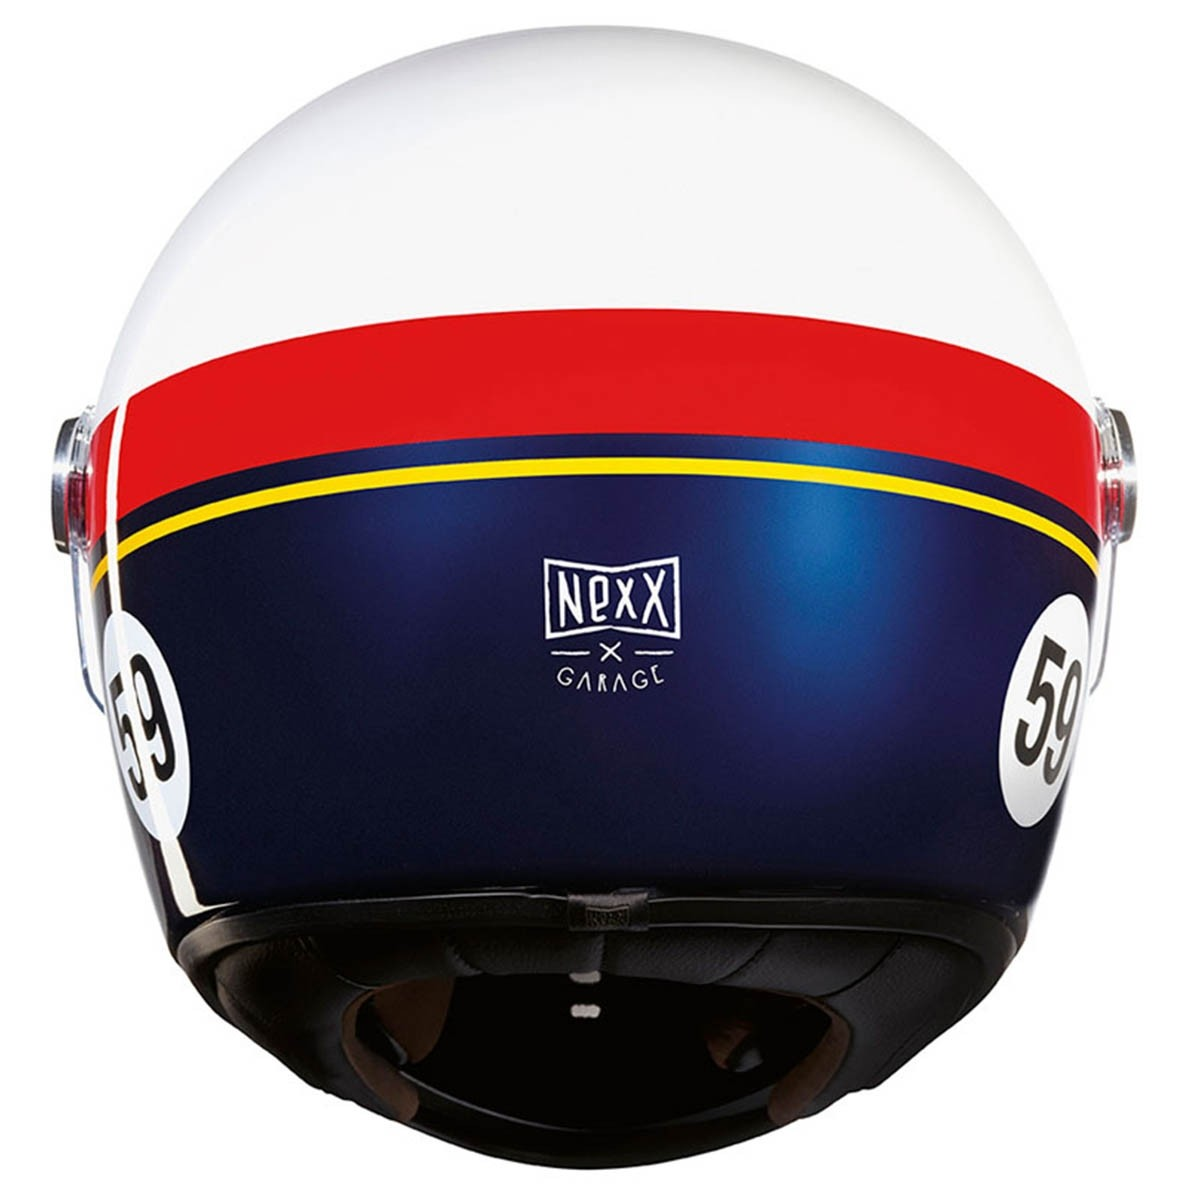 NEXX XG100R helmet - GRANDWIN white/red/blue